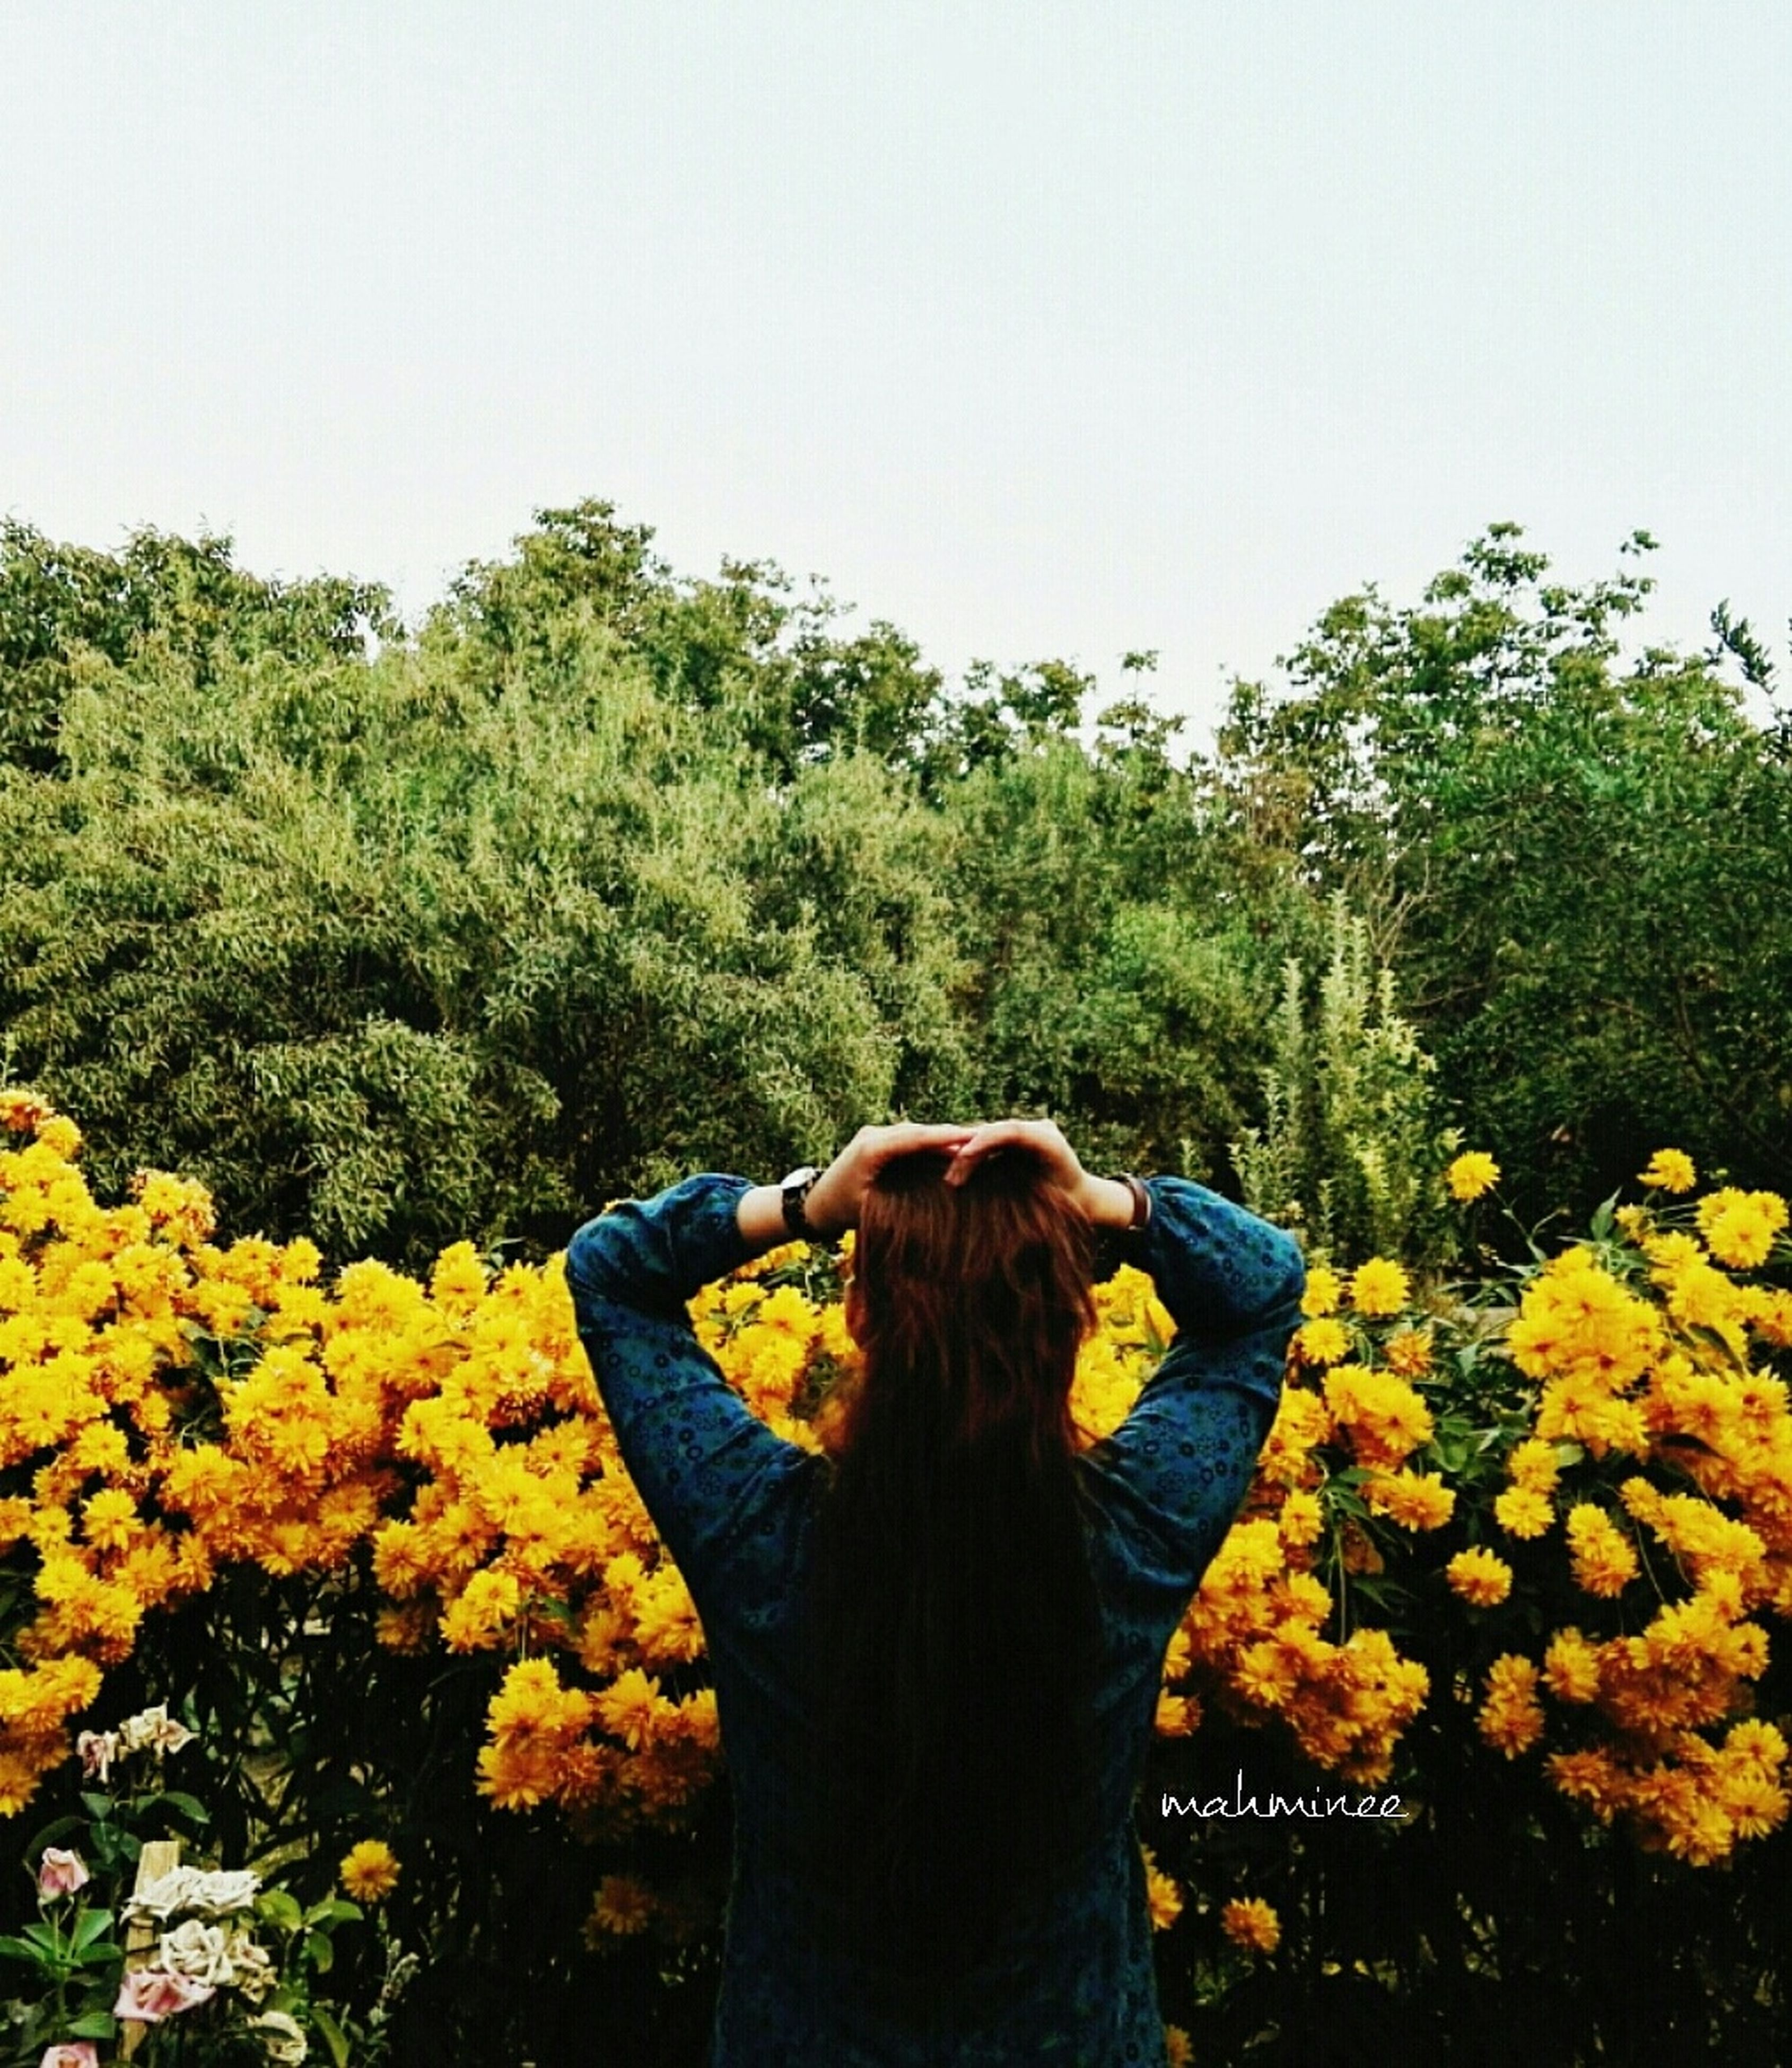 flower, long hair, rear view, waist up, yellow, leisure activity, person, casual clothing, standing, lifestyles, tree, freshness, three quarter length, young adult, beauty in nature, clear sky, growth, multi colored, bunch of flowers, nature, in front of, medium-length hair, day, tranquility, vibrant color, agriculture